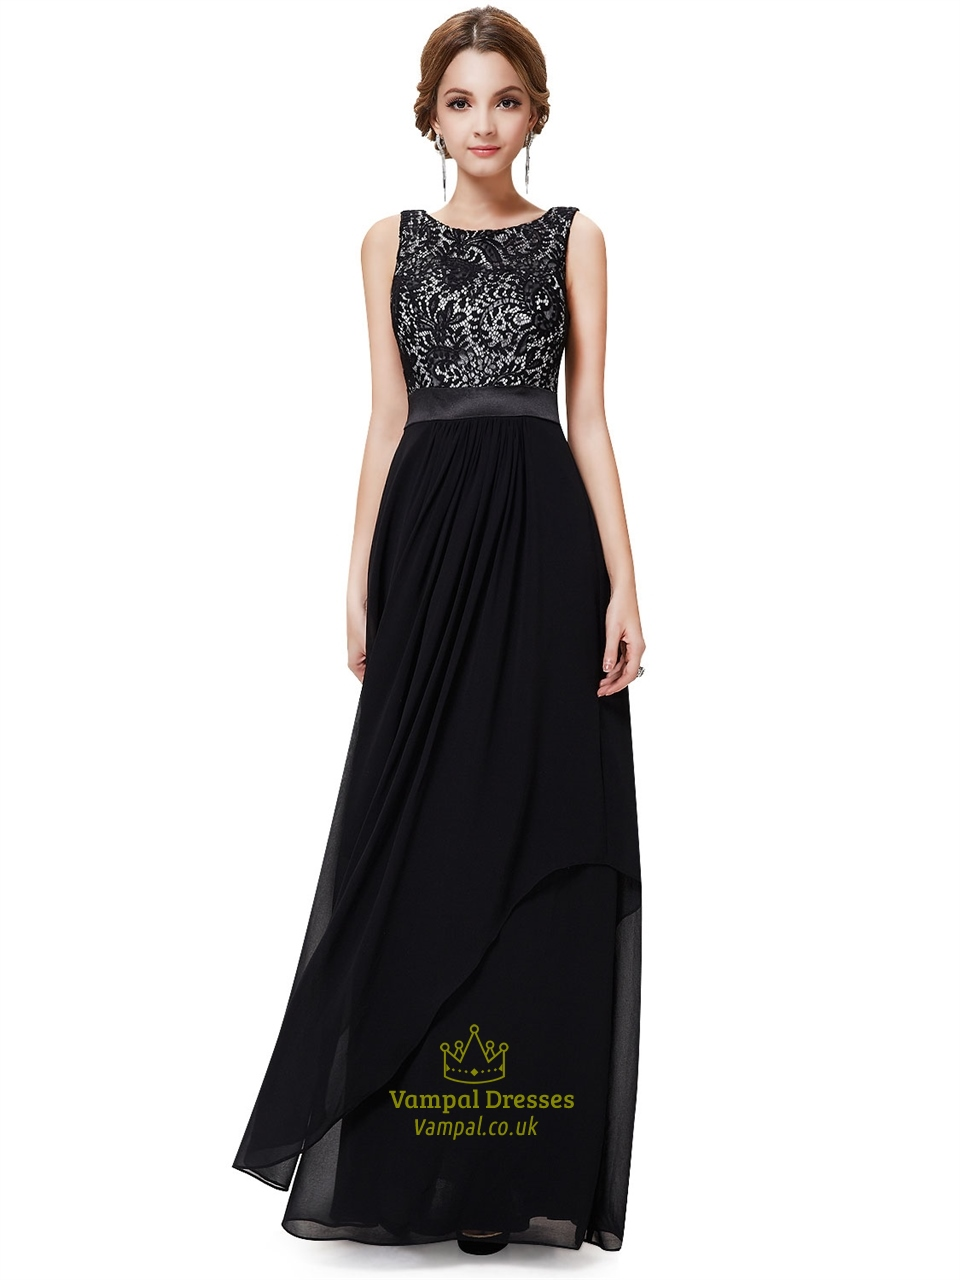 Black And White Lace Prom Dresses,Black Lace Top Cap Sleeves Evening Gown